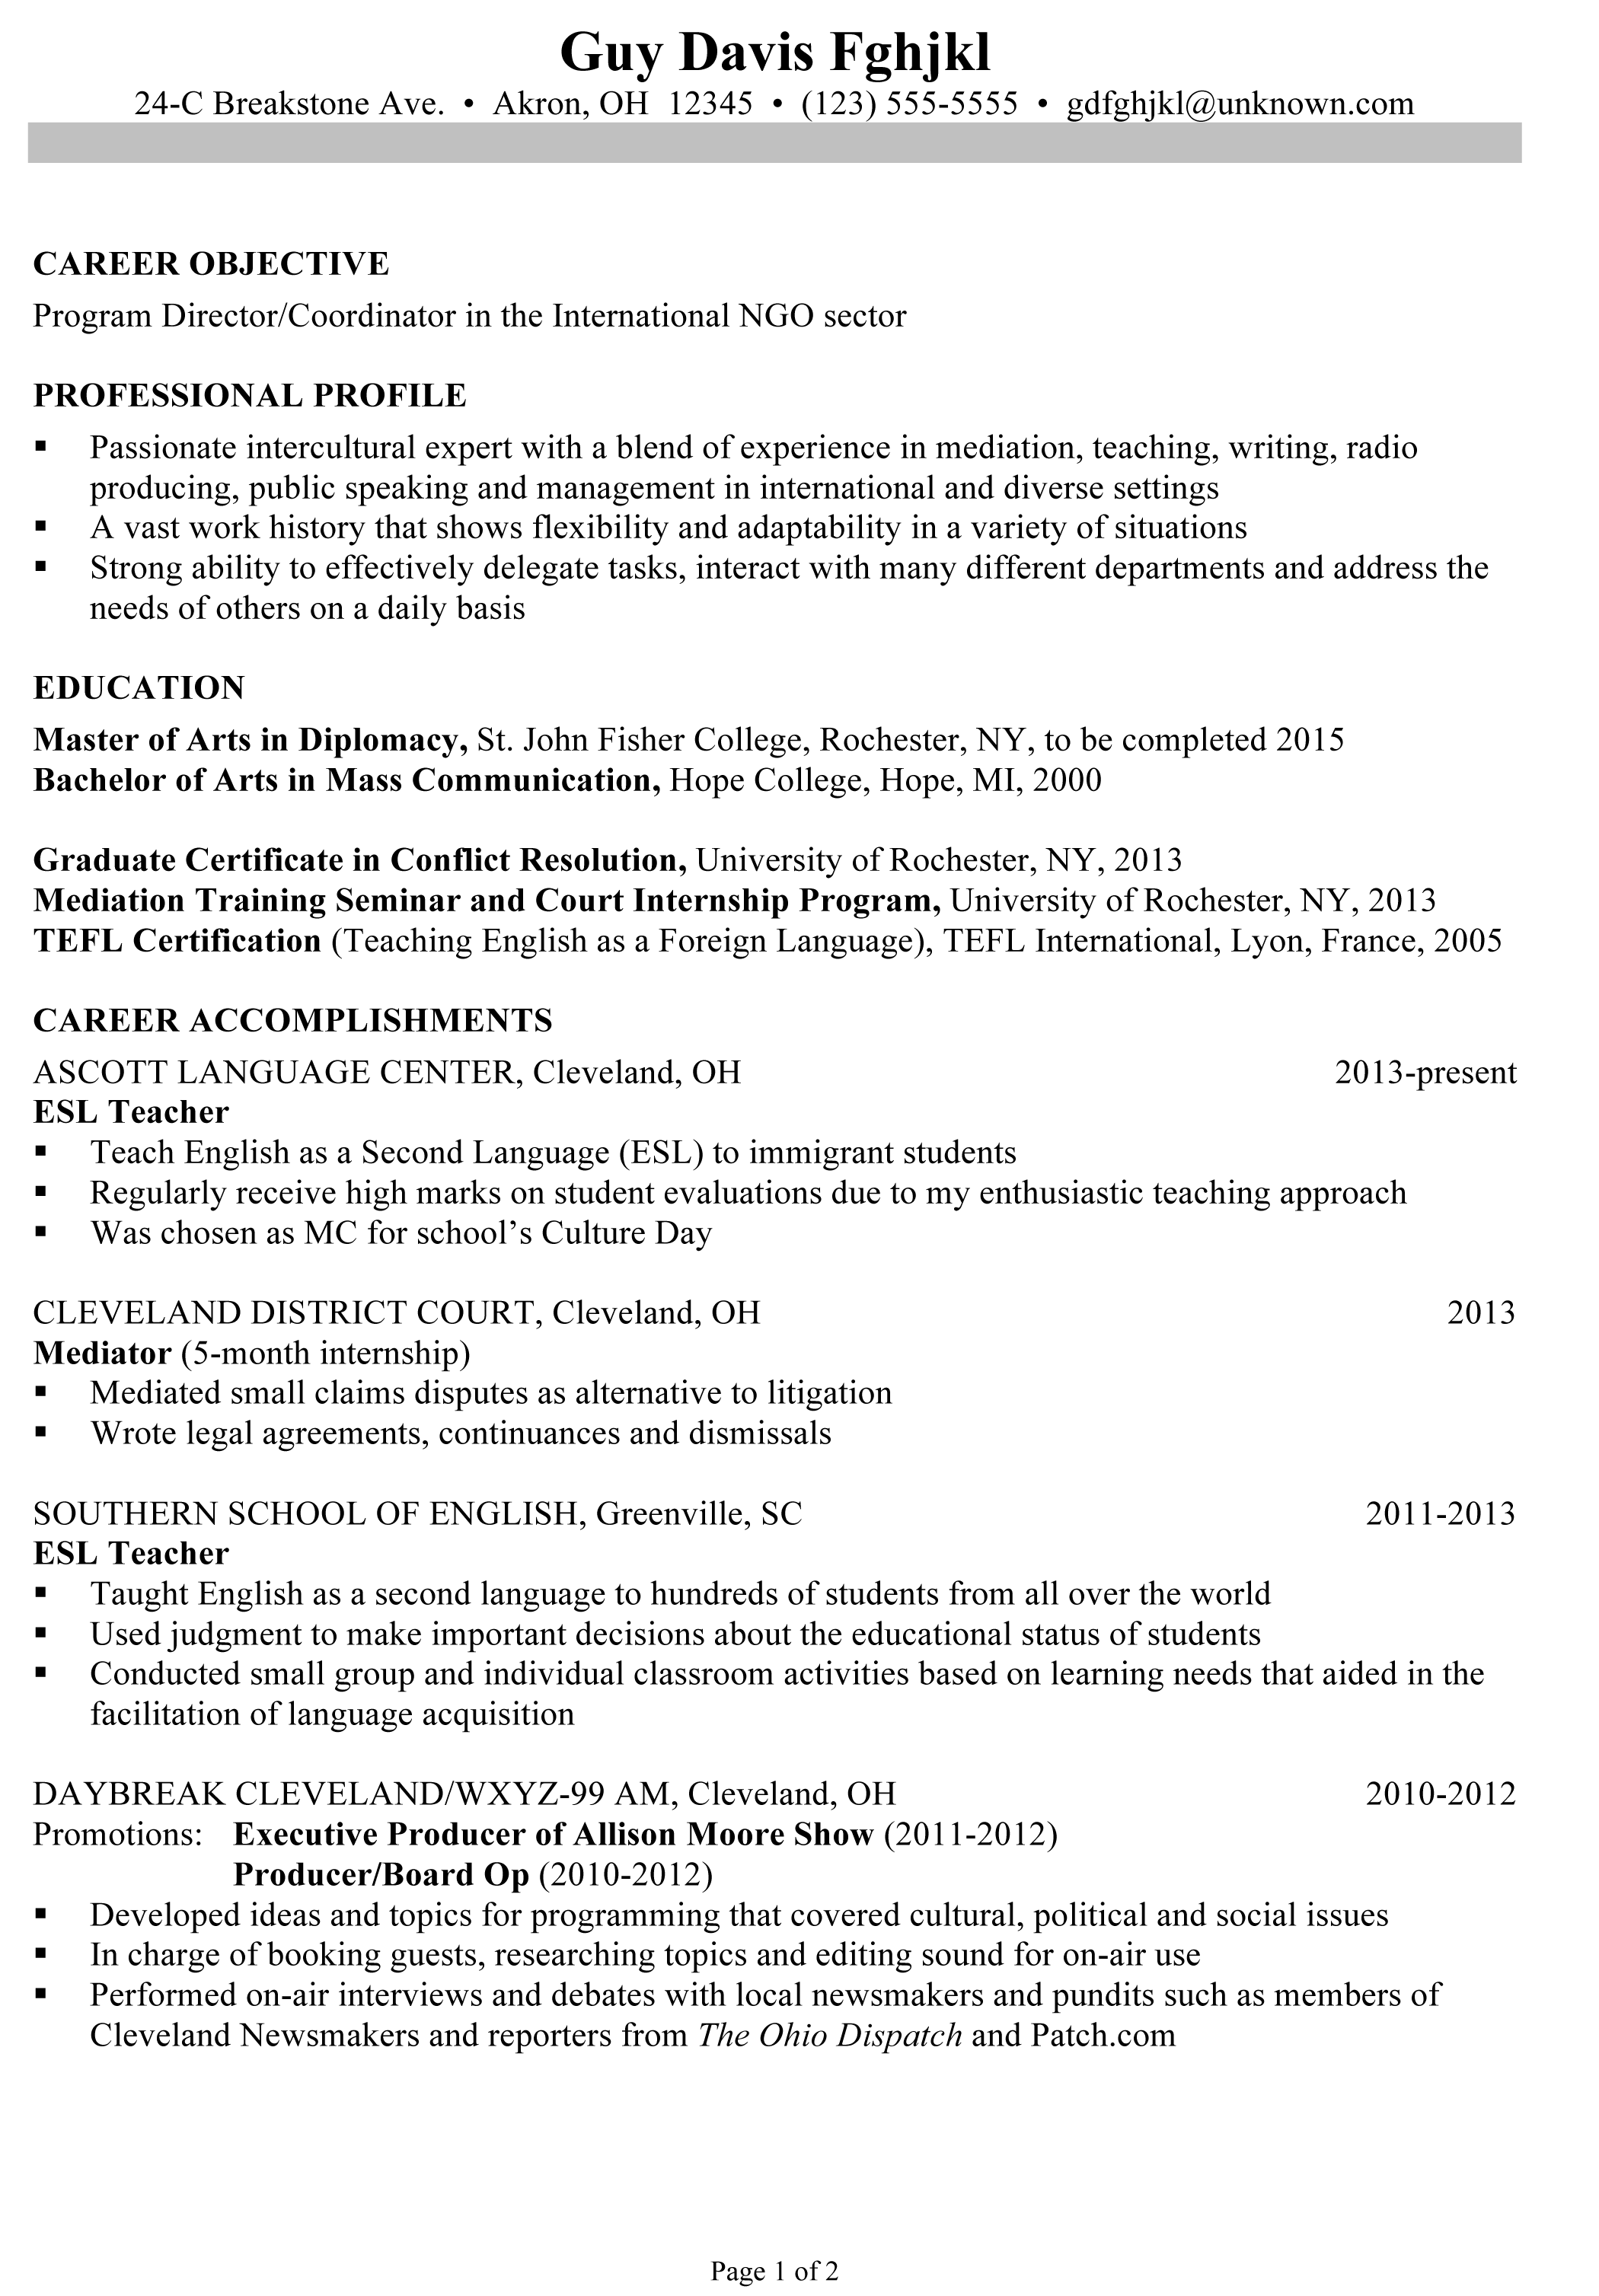 Resume Professional Examples Of Resumes professional summary resume example best templatesample resumes cover letter examples